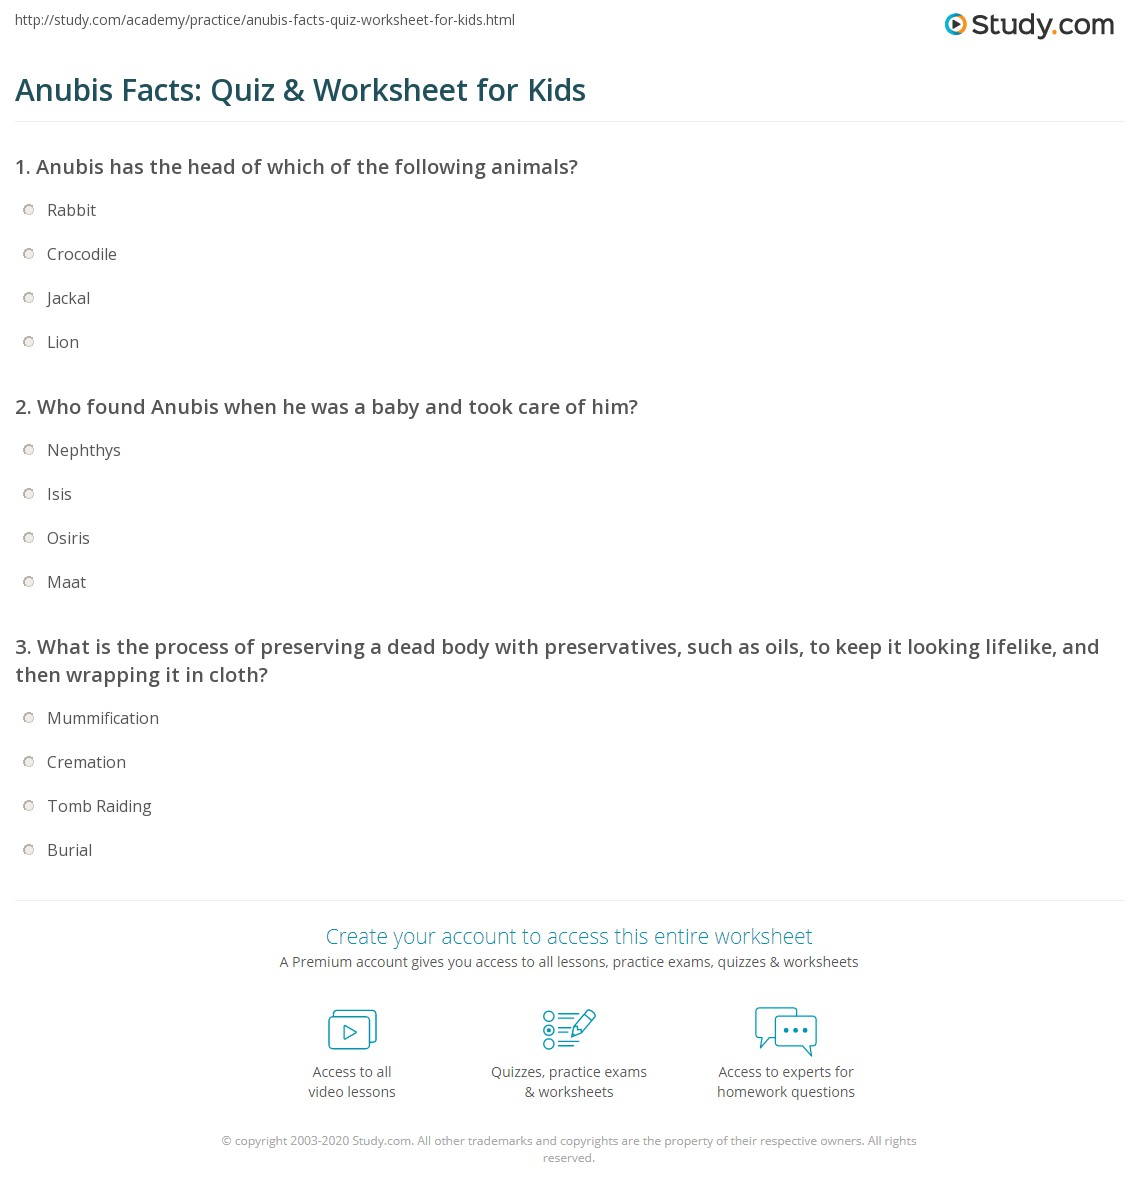 Anubis Facts Quiz Amp Worksheet For Kids